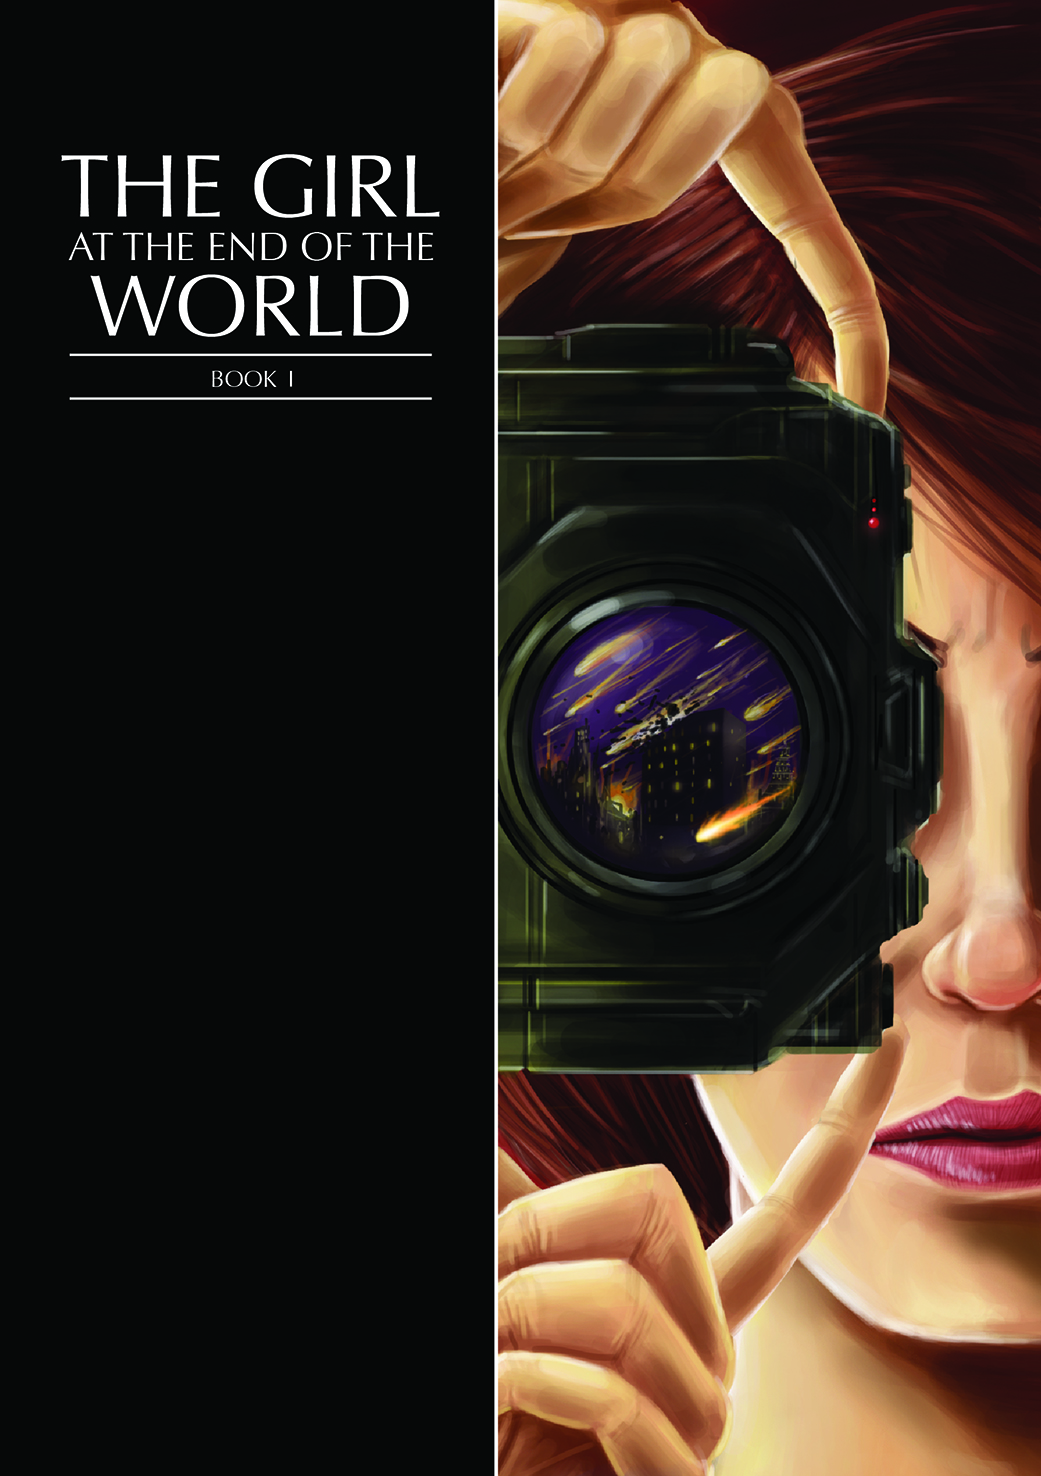 The Girl at the End of the Wold Vol 1 alternate by Various